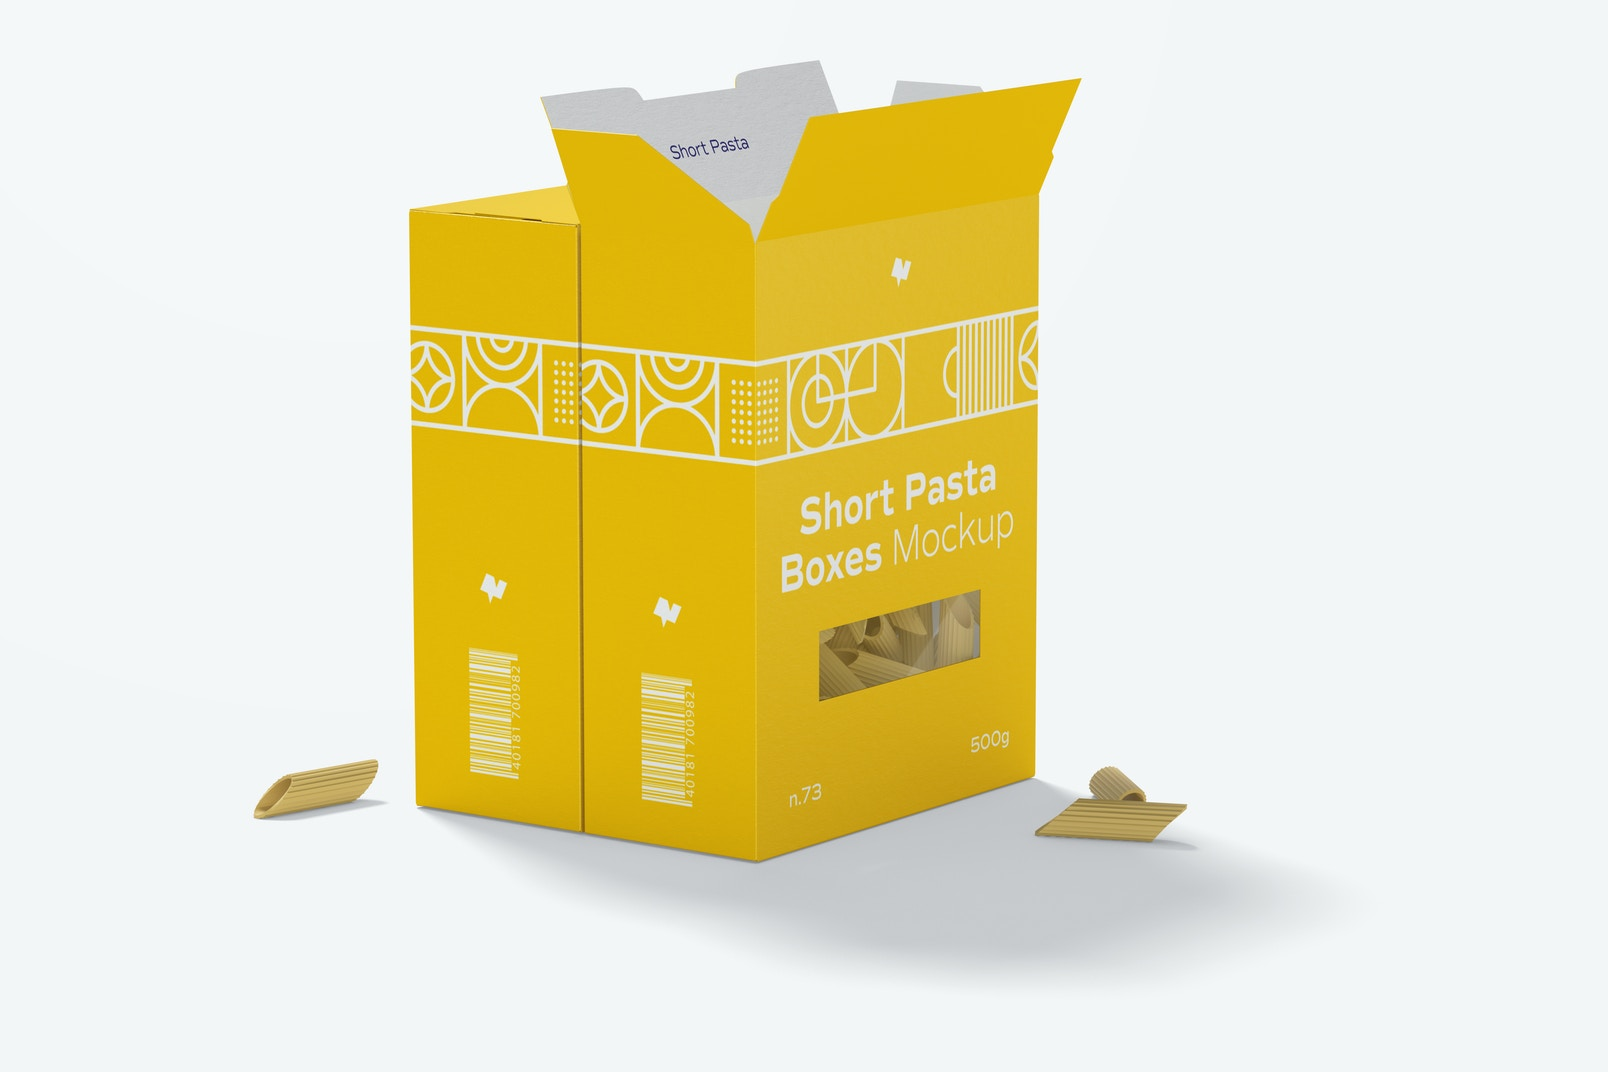 Short Pasta Boxes Mockup, Opened and Closed